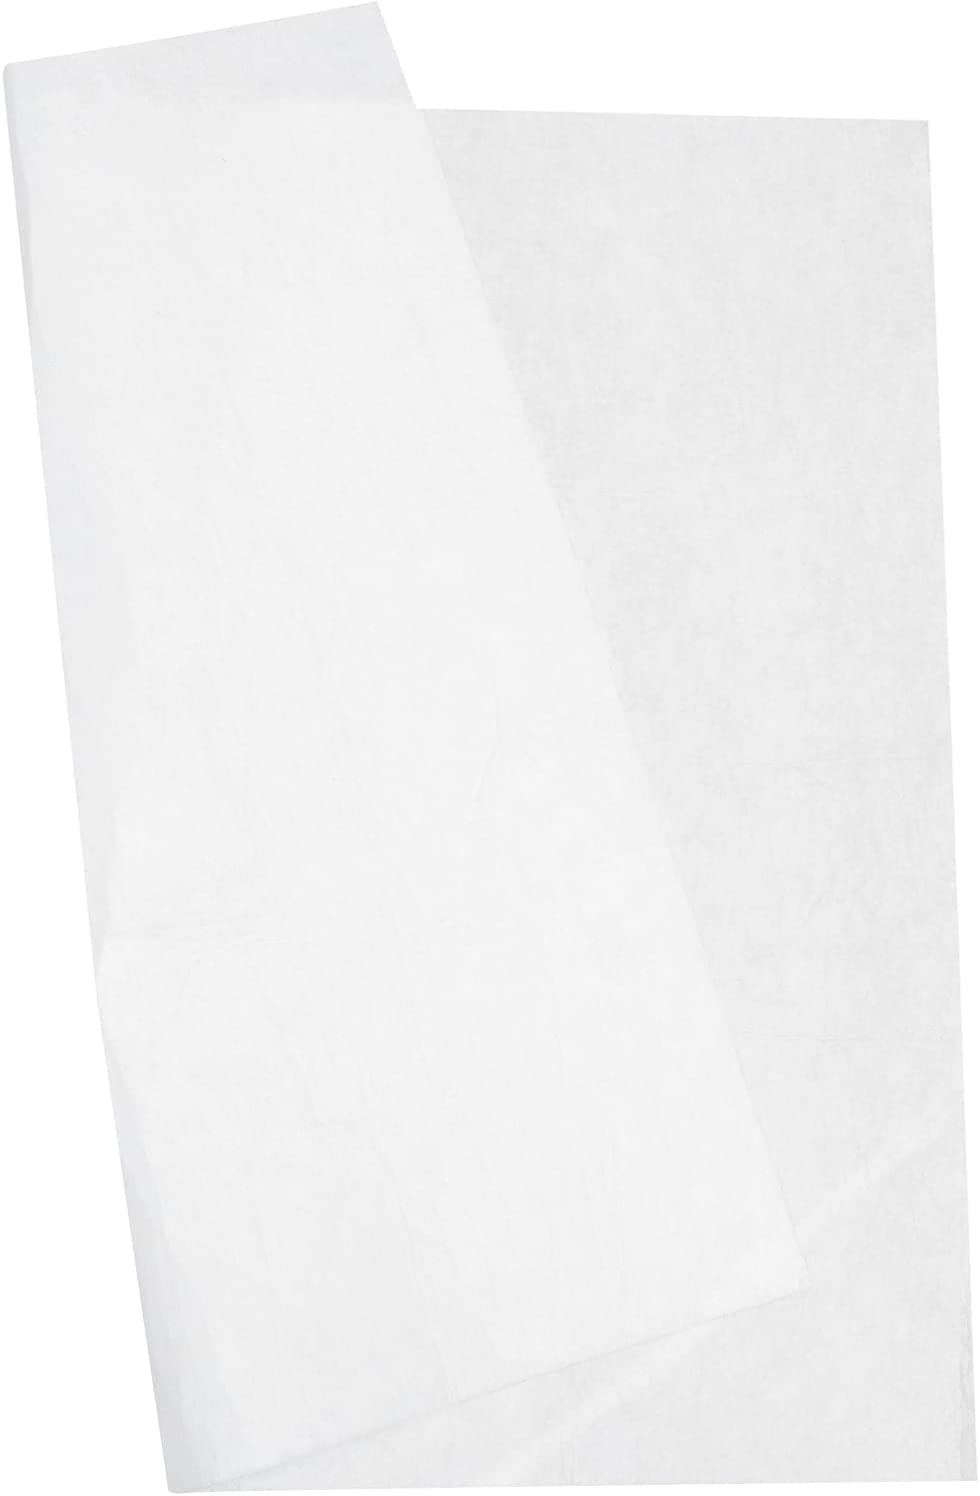 DOITOOL Air Vent Filters Register Filter Sheet Max 61% OFF Sales results No. 1 Conditio